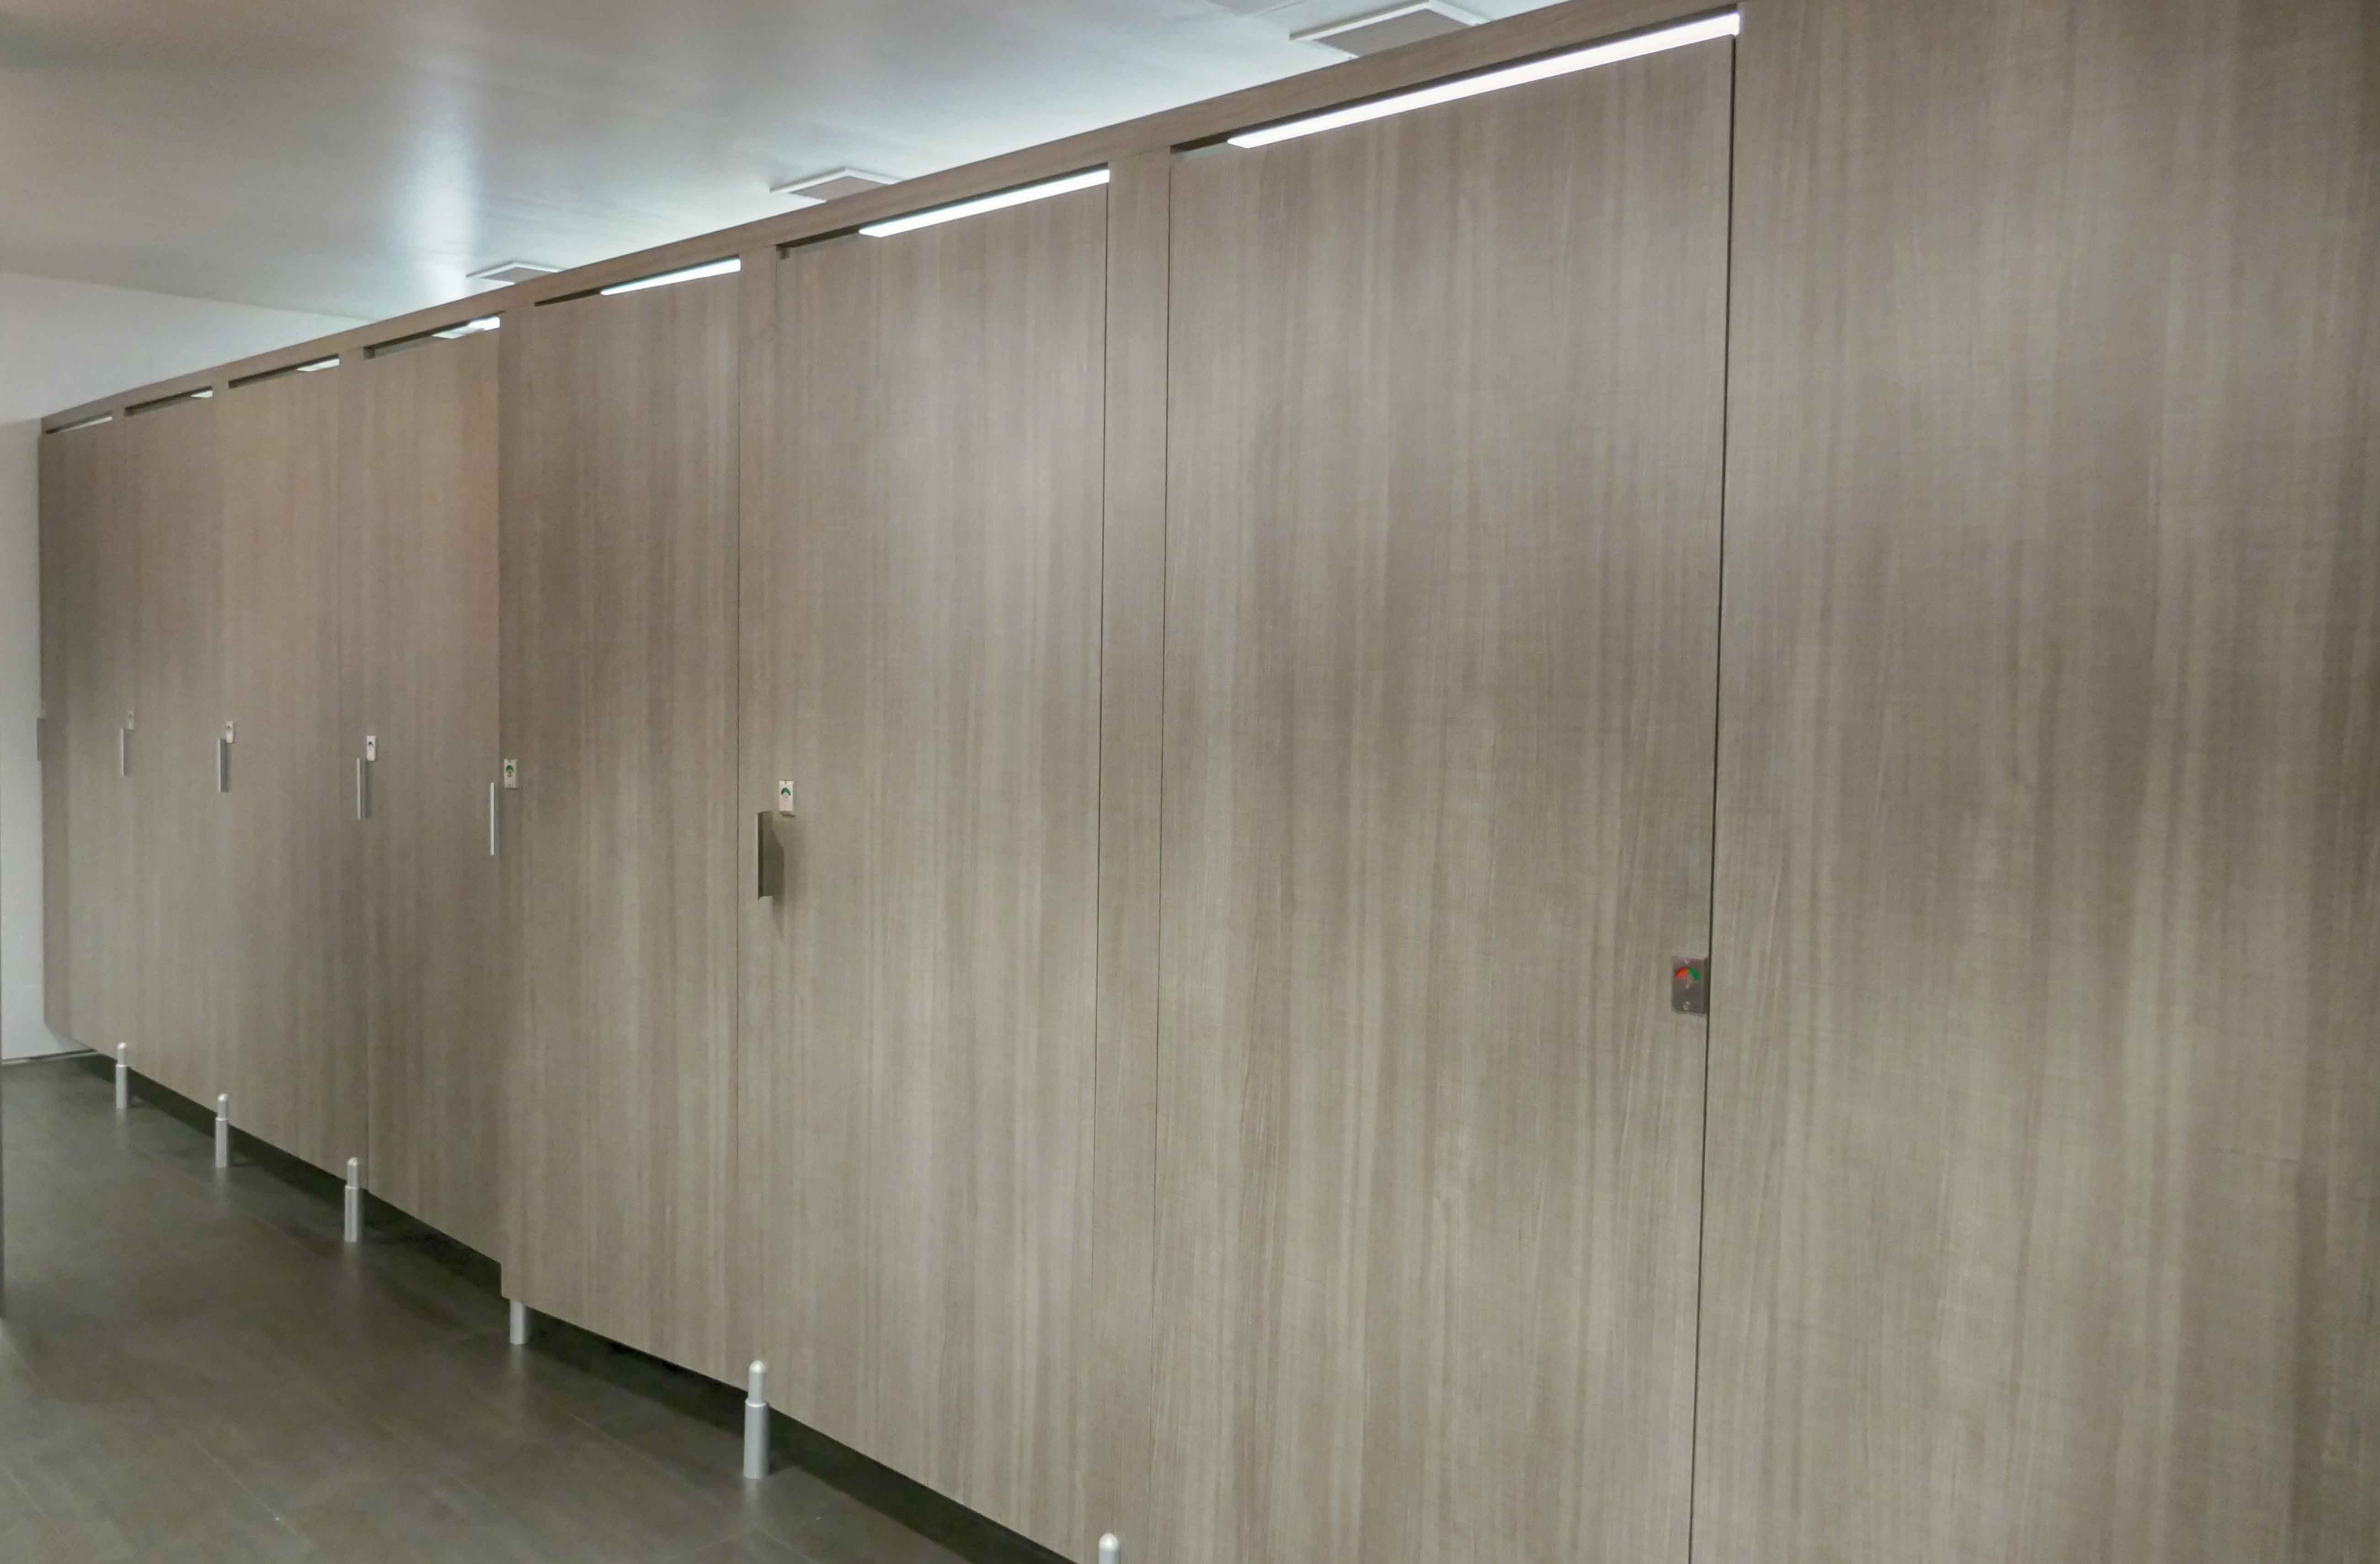 Ironwood Manufacturing laminate toilet partition and bathroom doors with Door Lite insert. Beautiful unique & Ironwood Manufacturing laminate toilet partition and bathroom doors ...